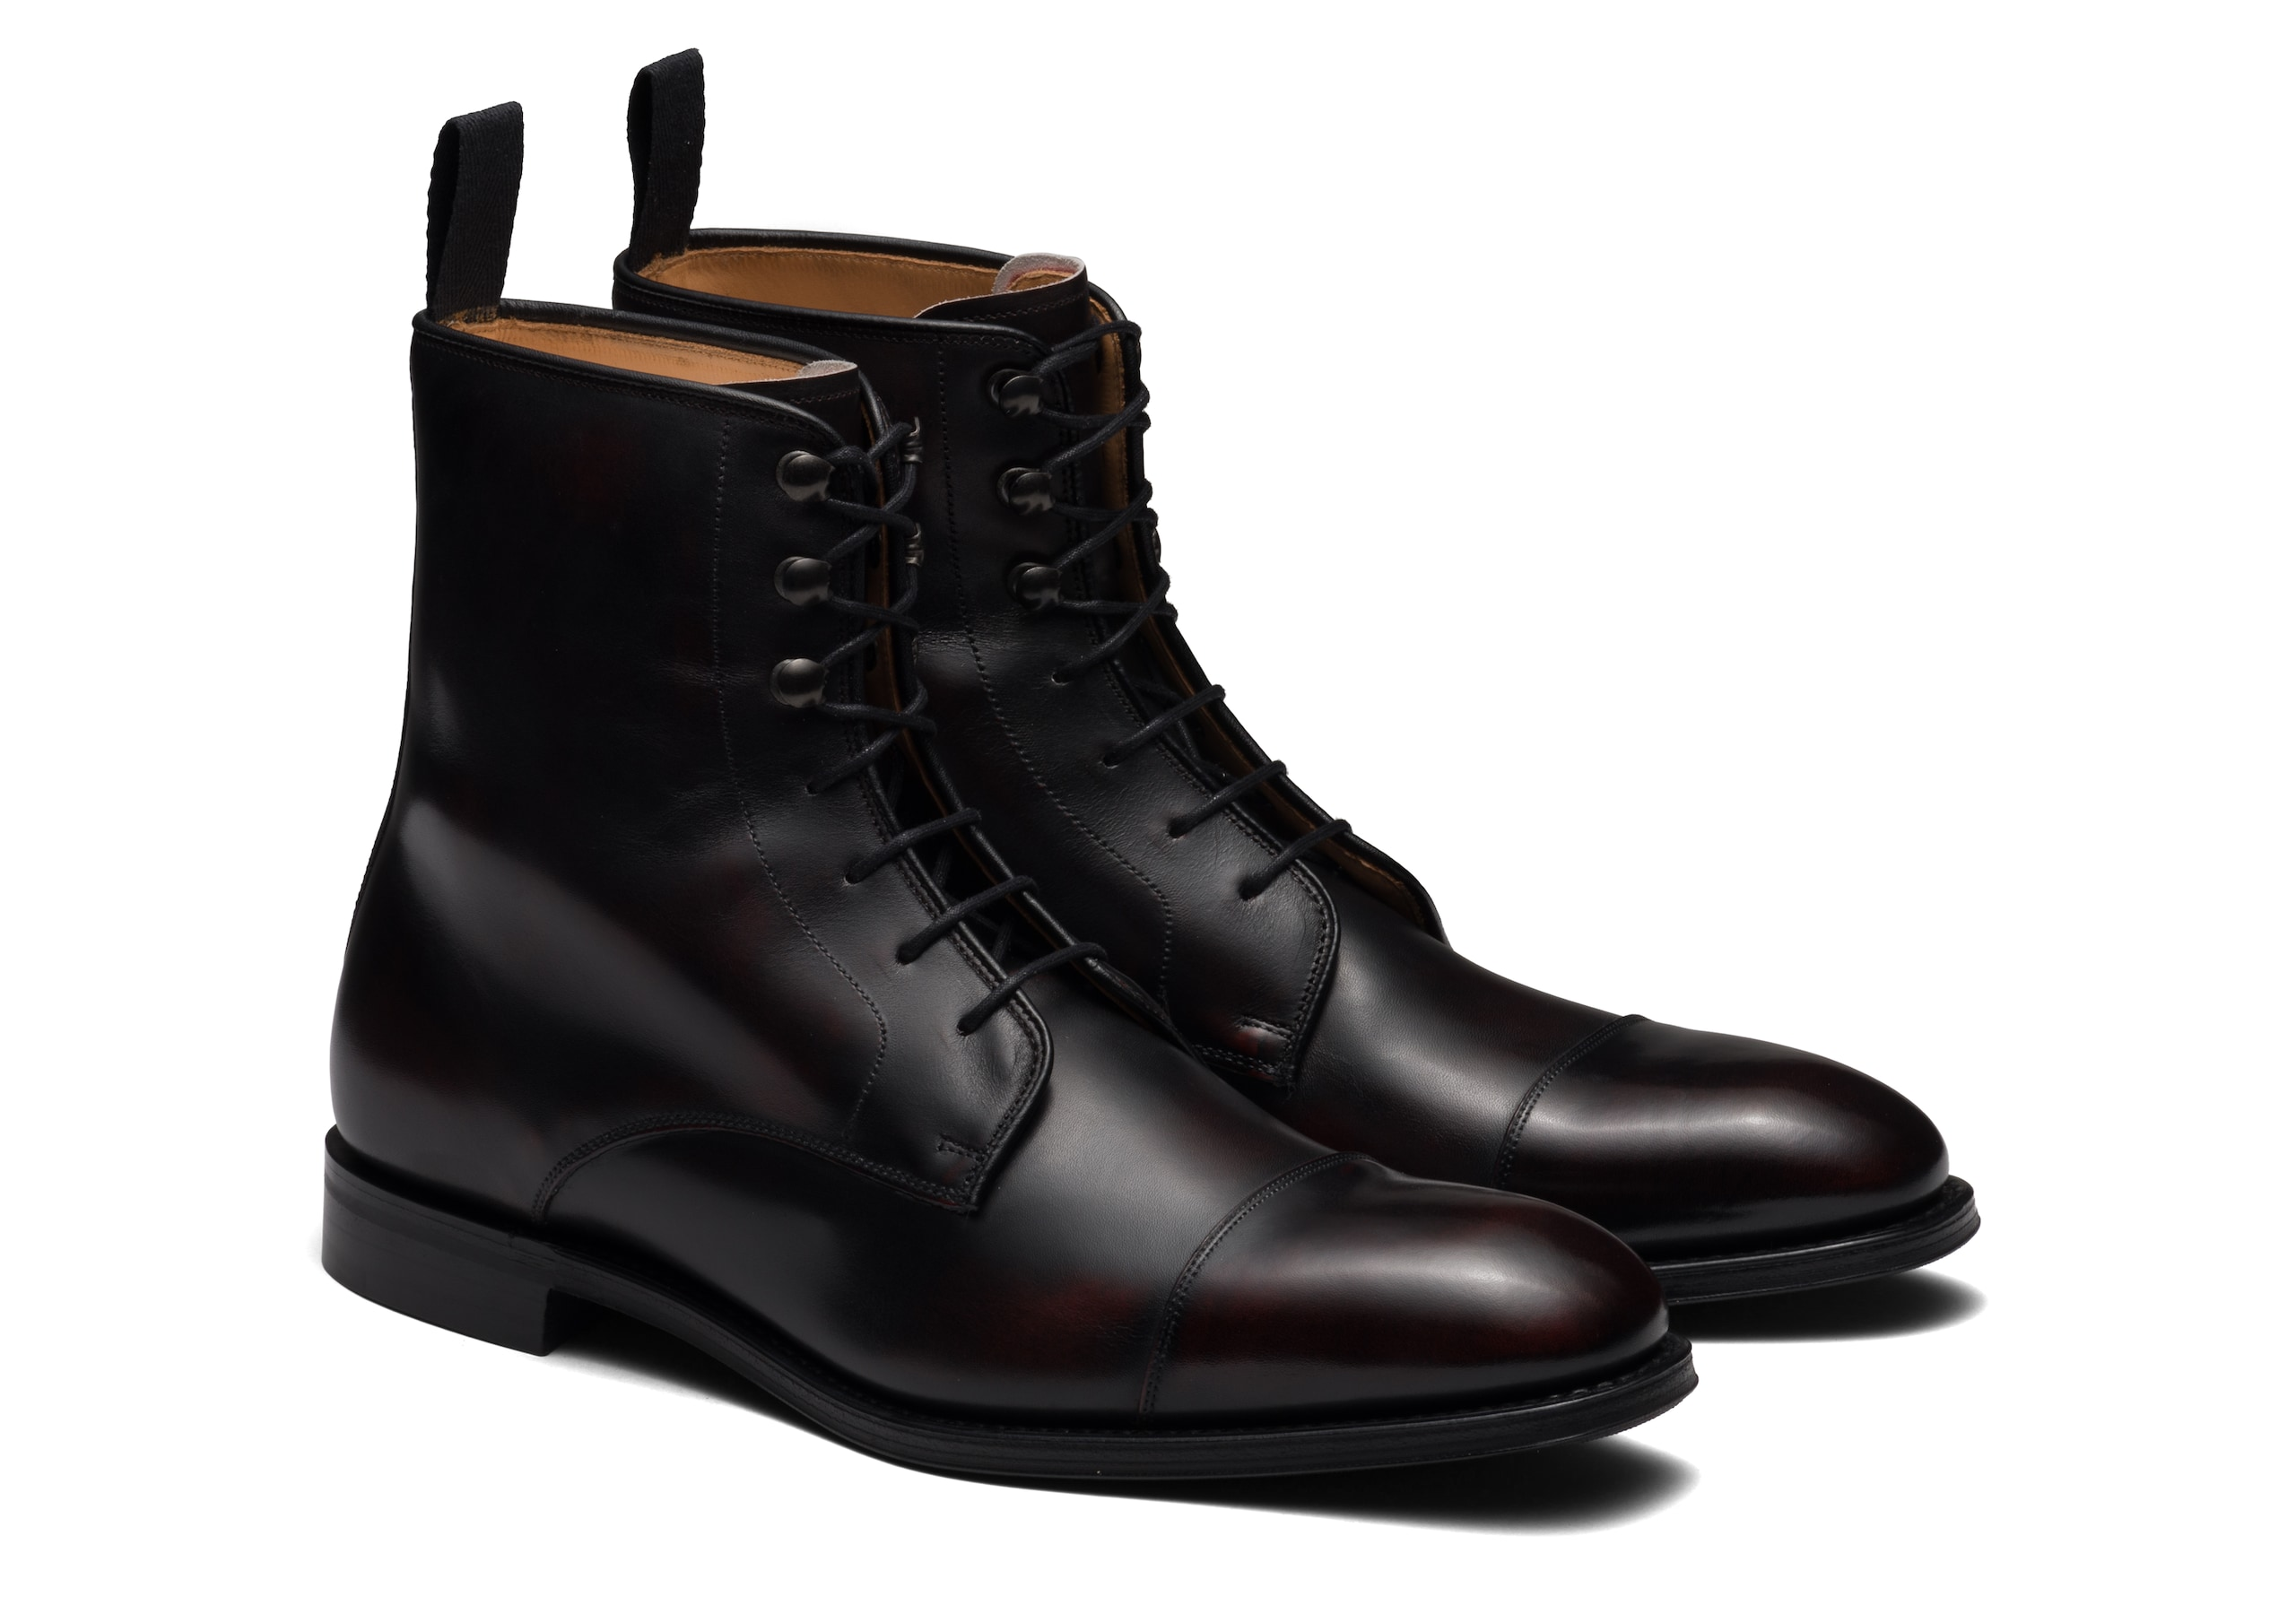 Edworth ^ r Church's Superior Calf Lace Up Boot Burgundy